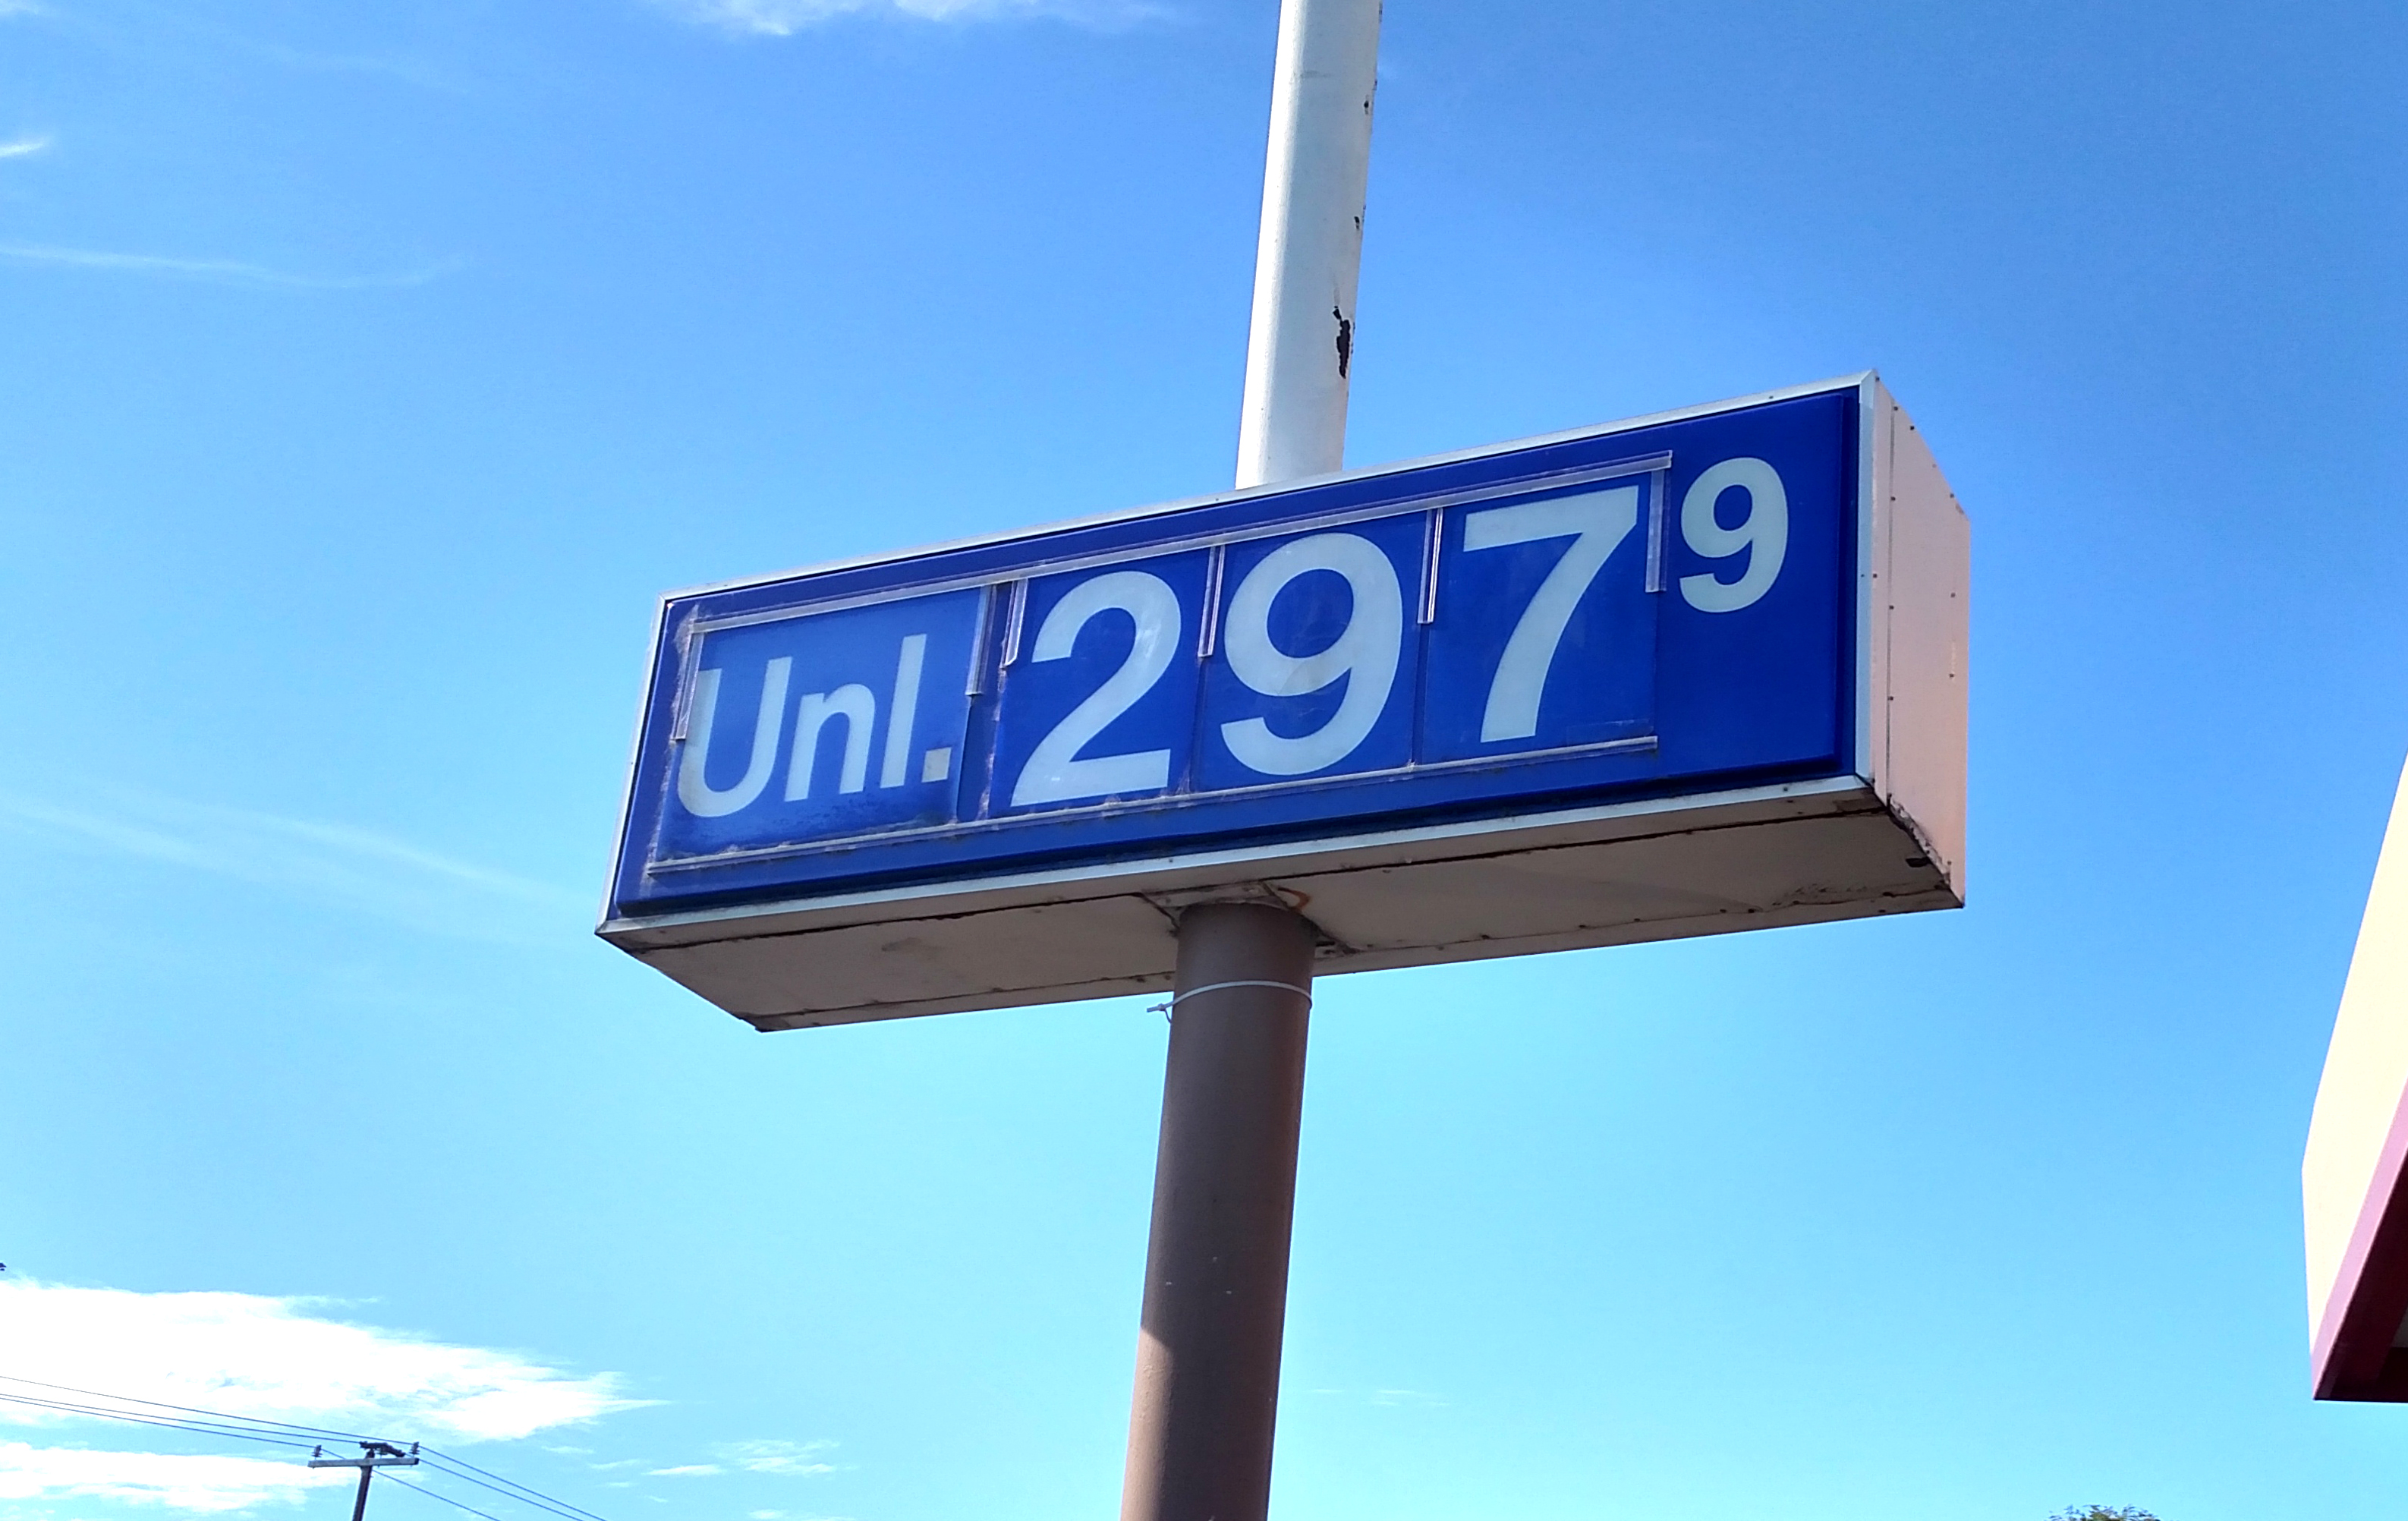 Gas prices spike 5 cents in past week AZ average $3 08 per gallon